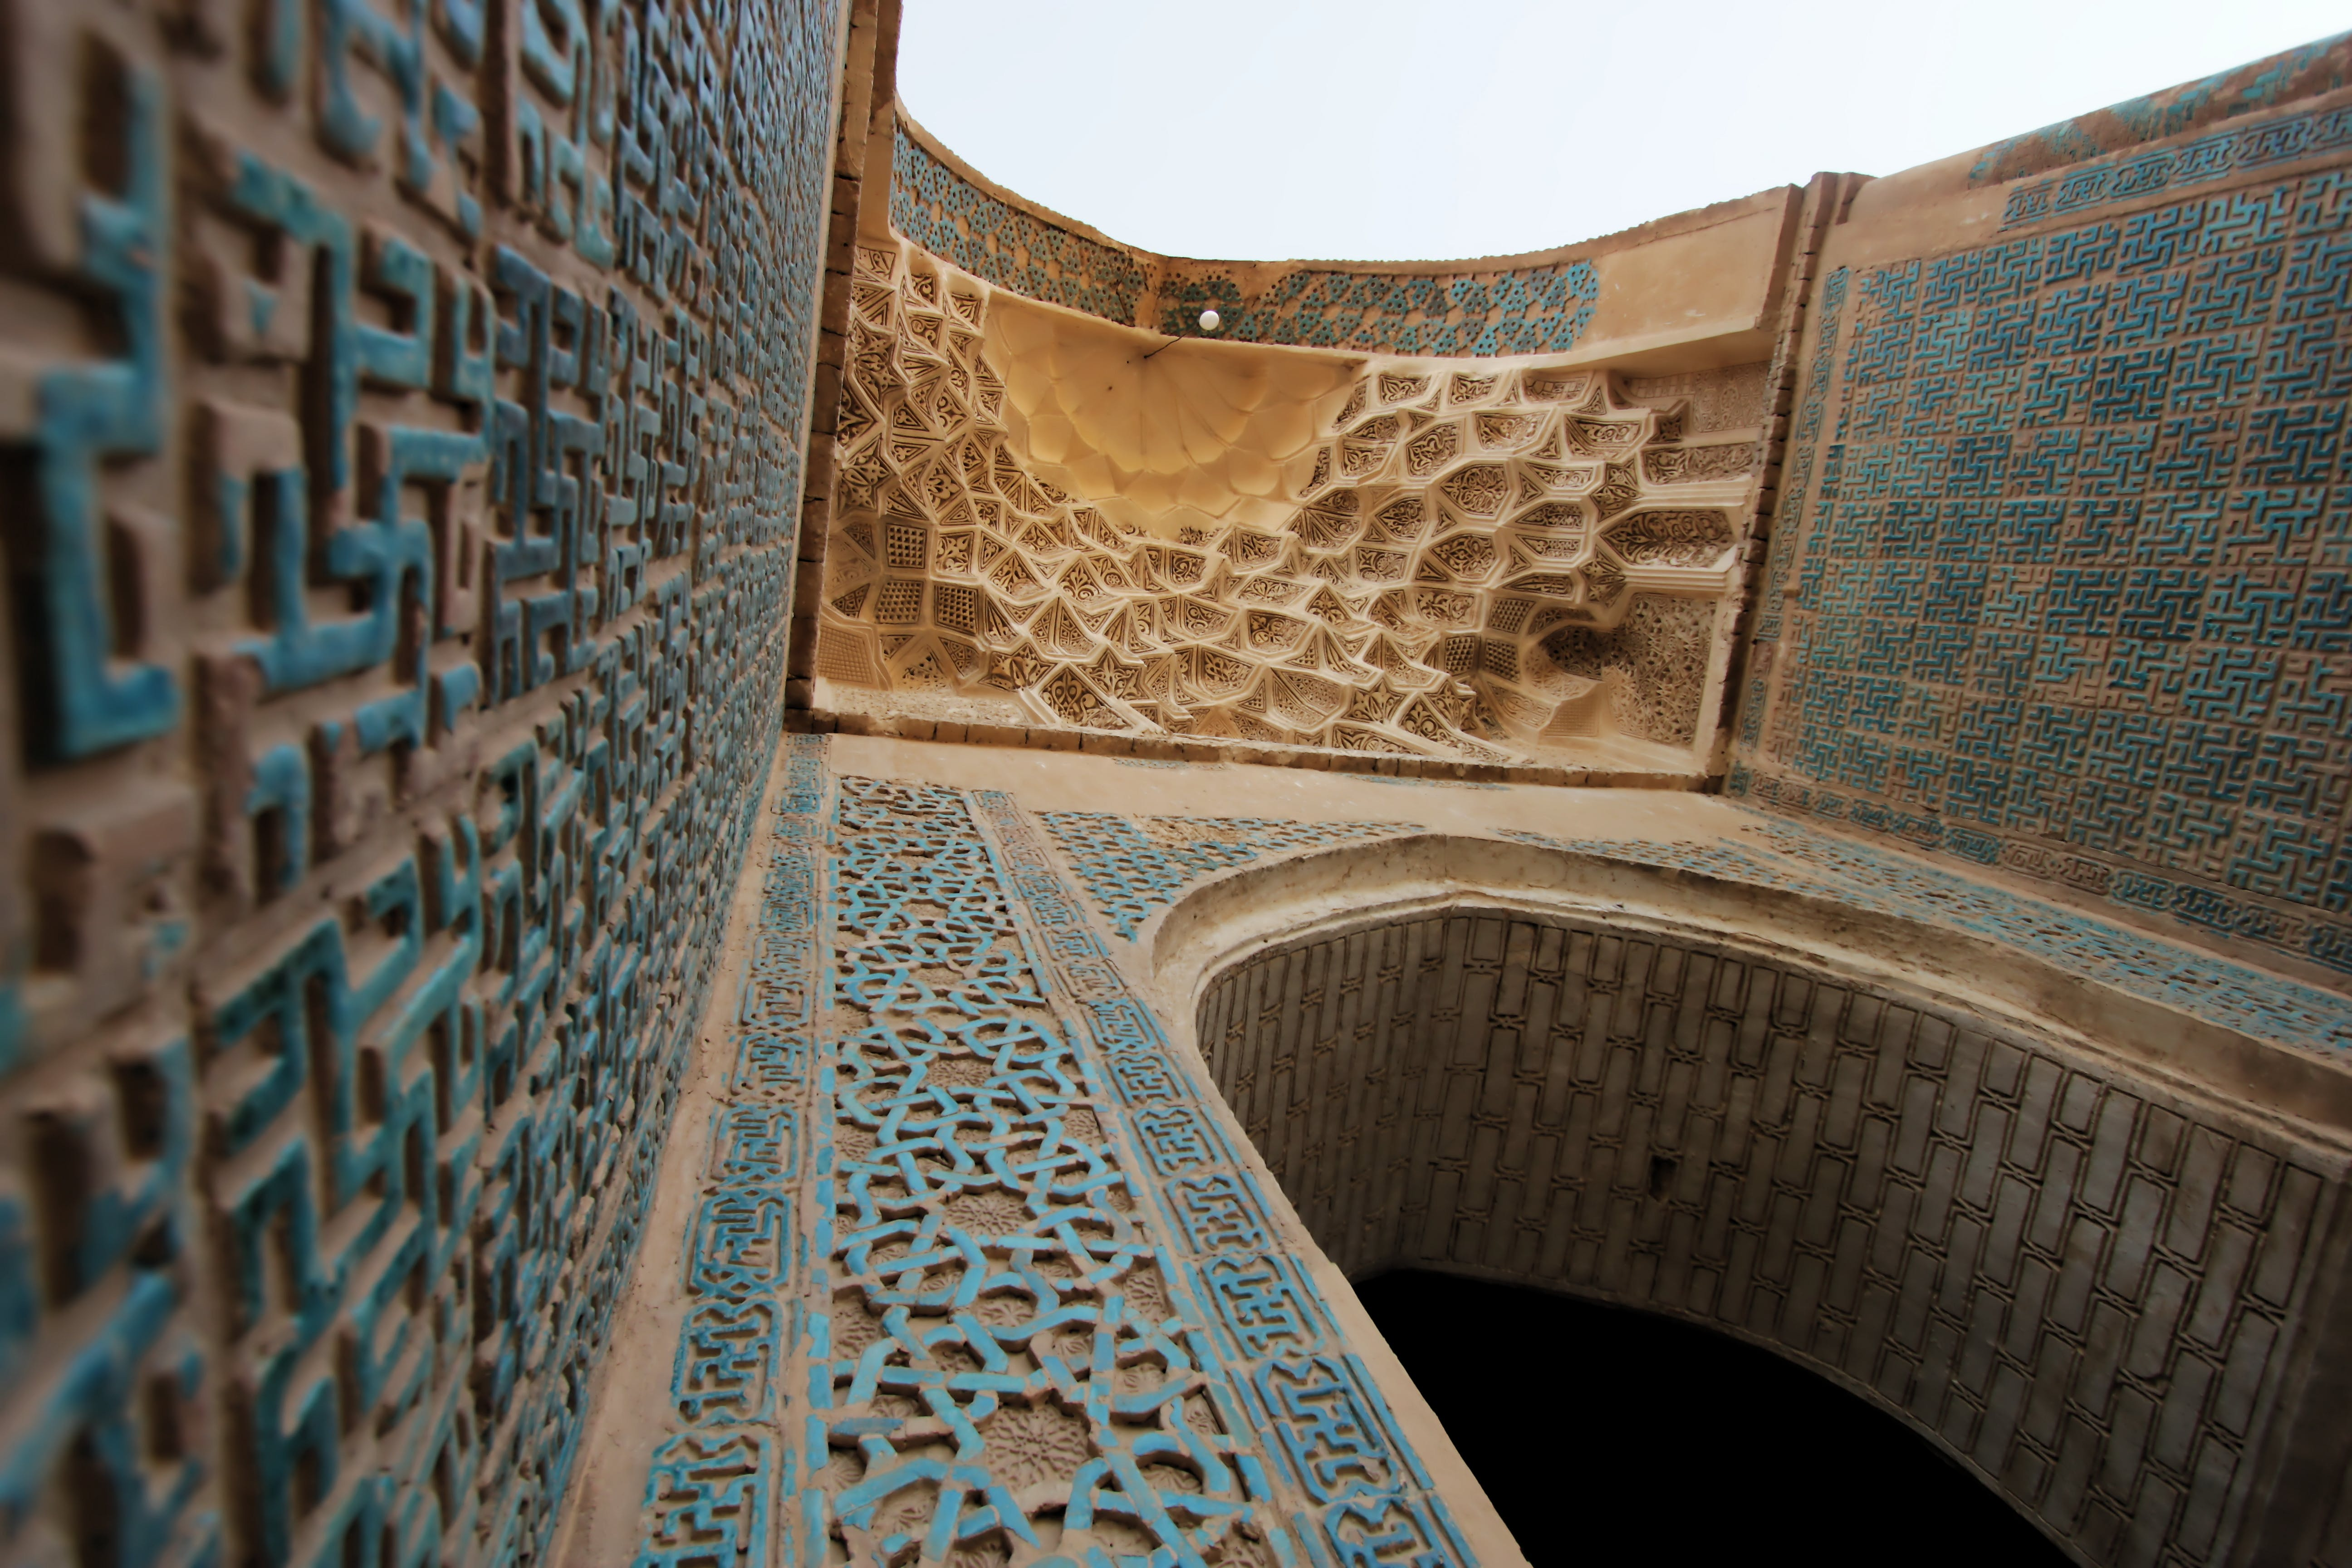 Free stock photo of Iran-Bastam 2012